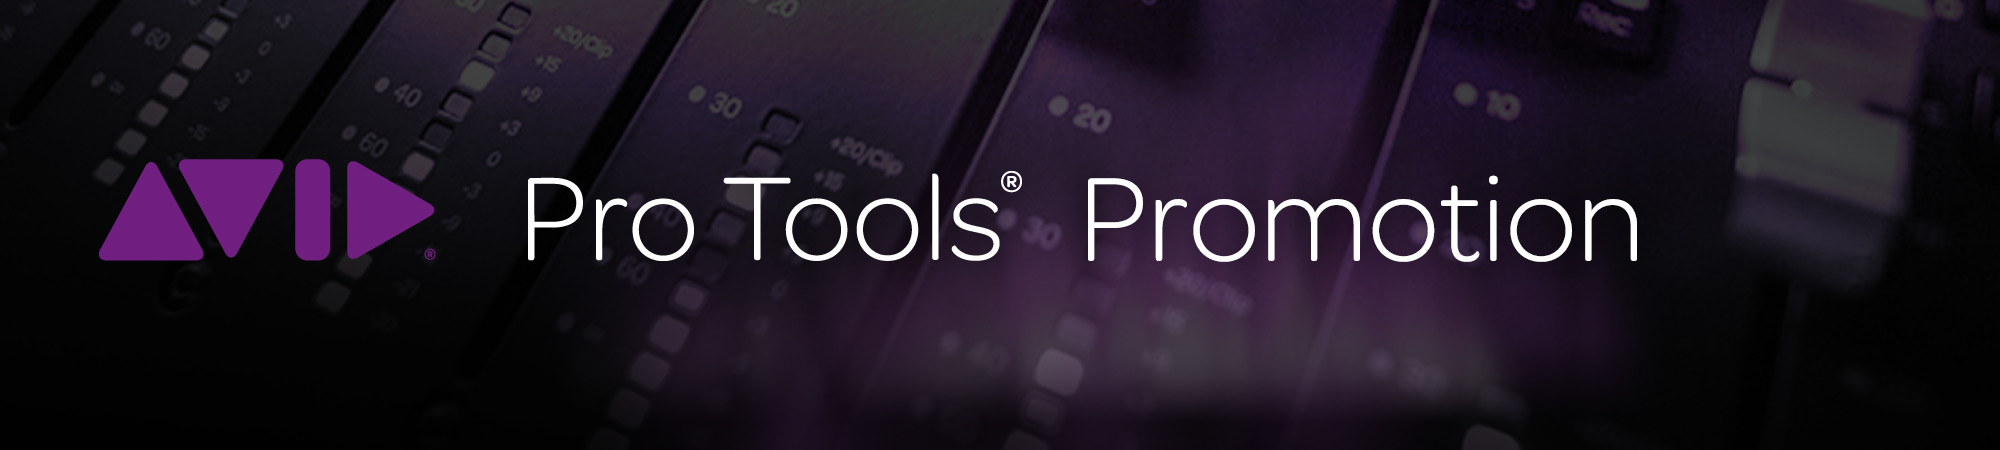 Banner Pro Tools Promotion